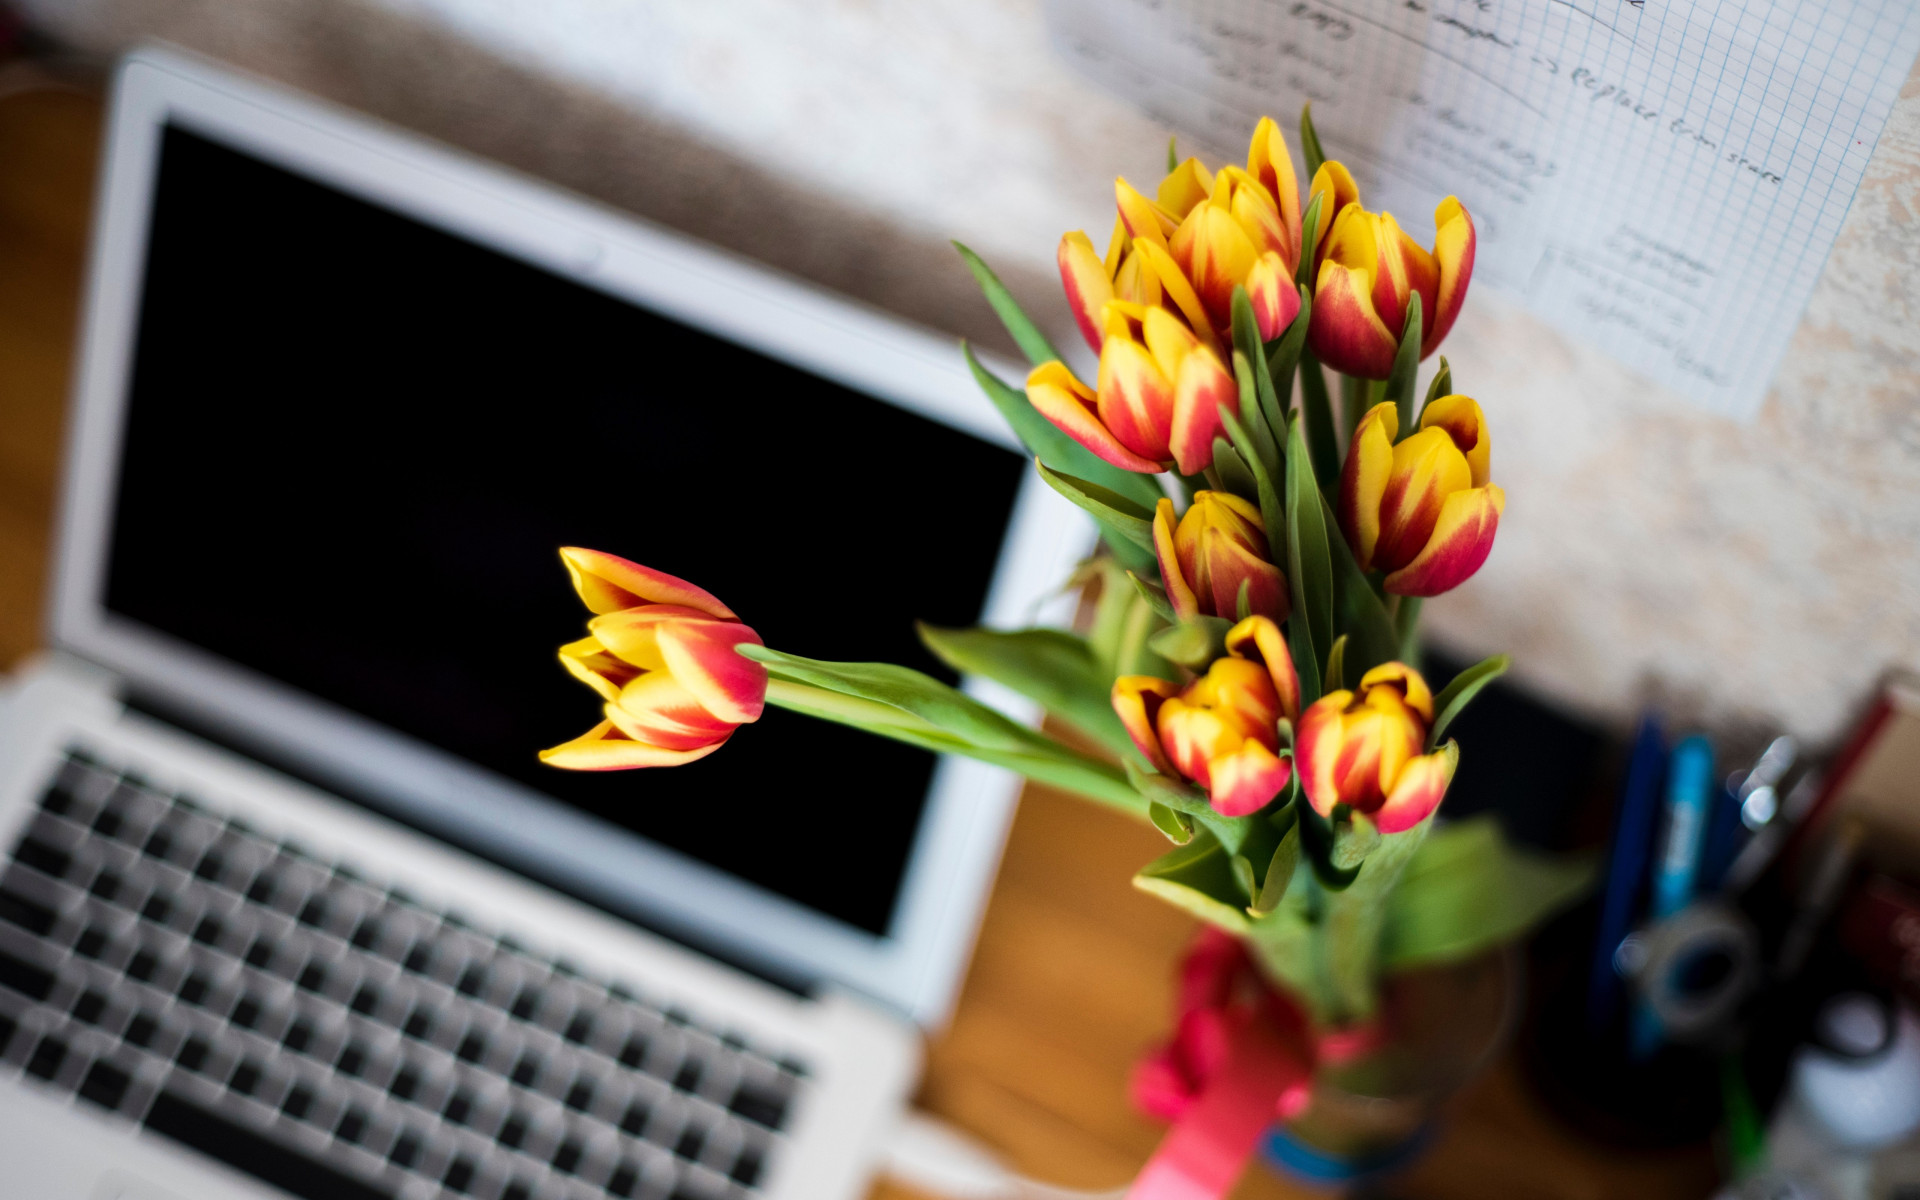 Laptop and tulips bouquet wallpaper 1920x1200